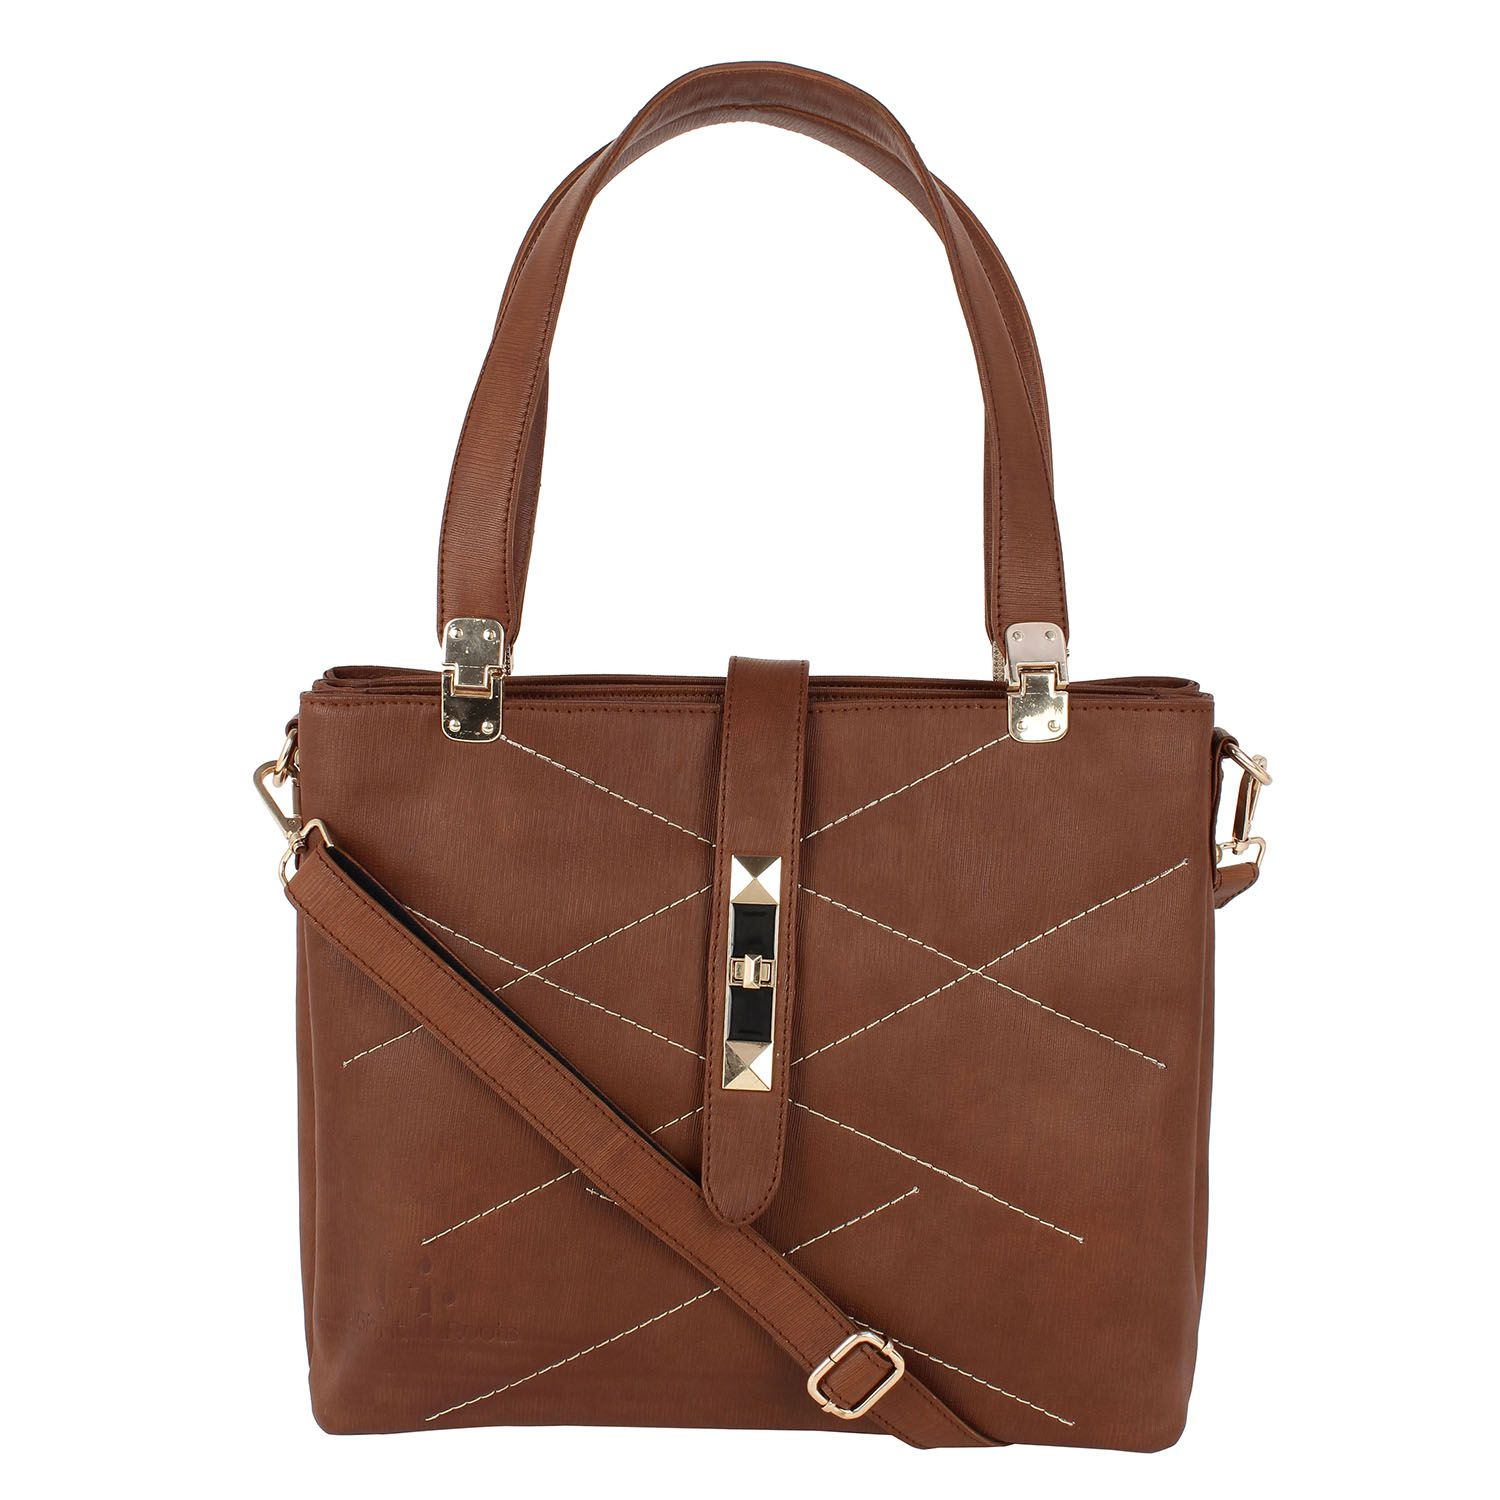 Giant Roots Brown Faux Leather Shoulder Bag